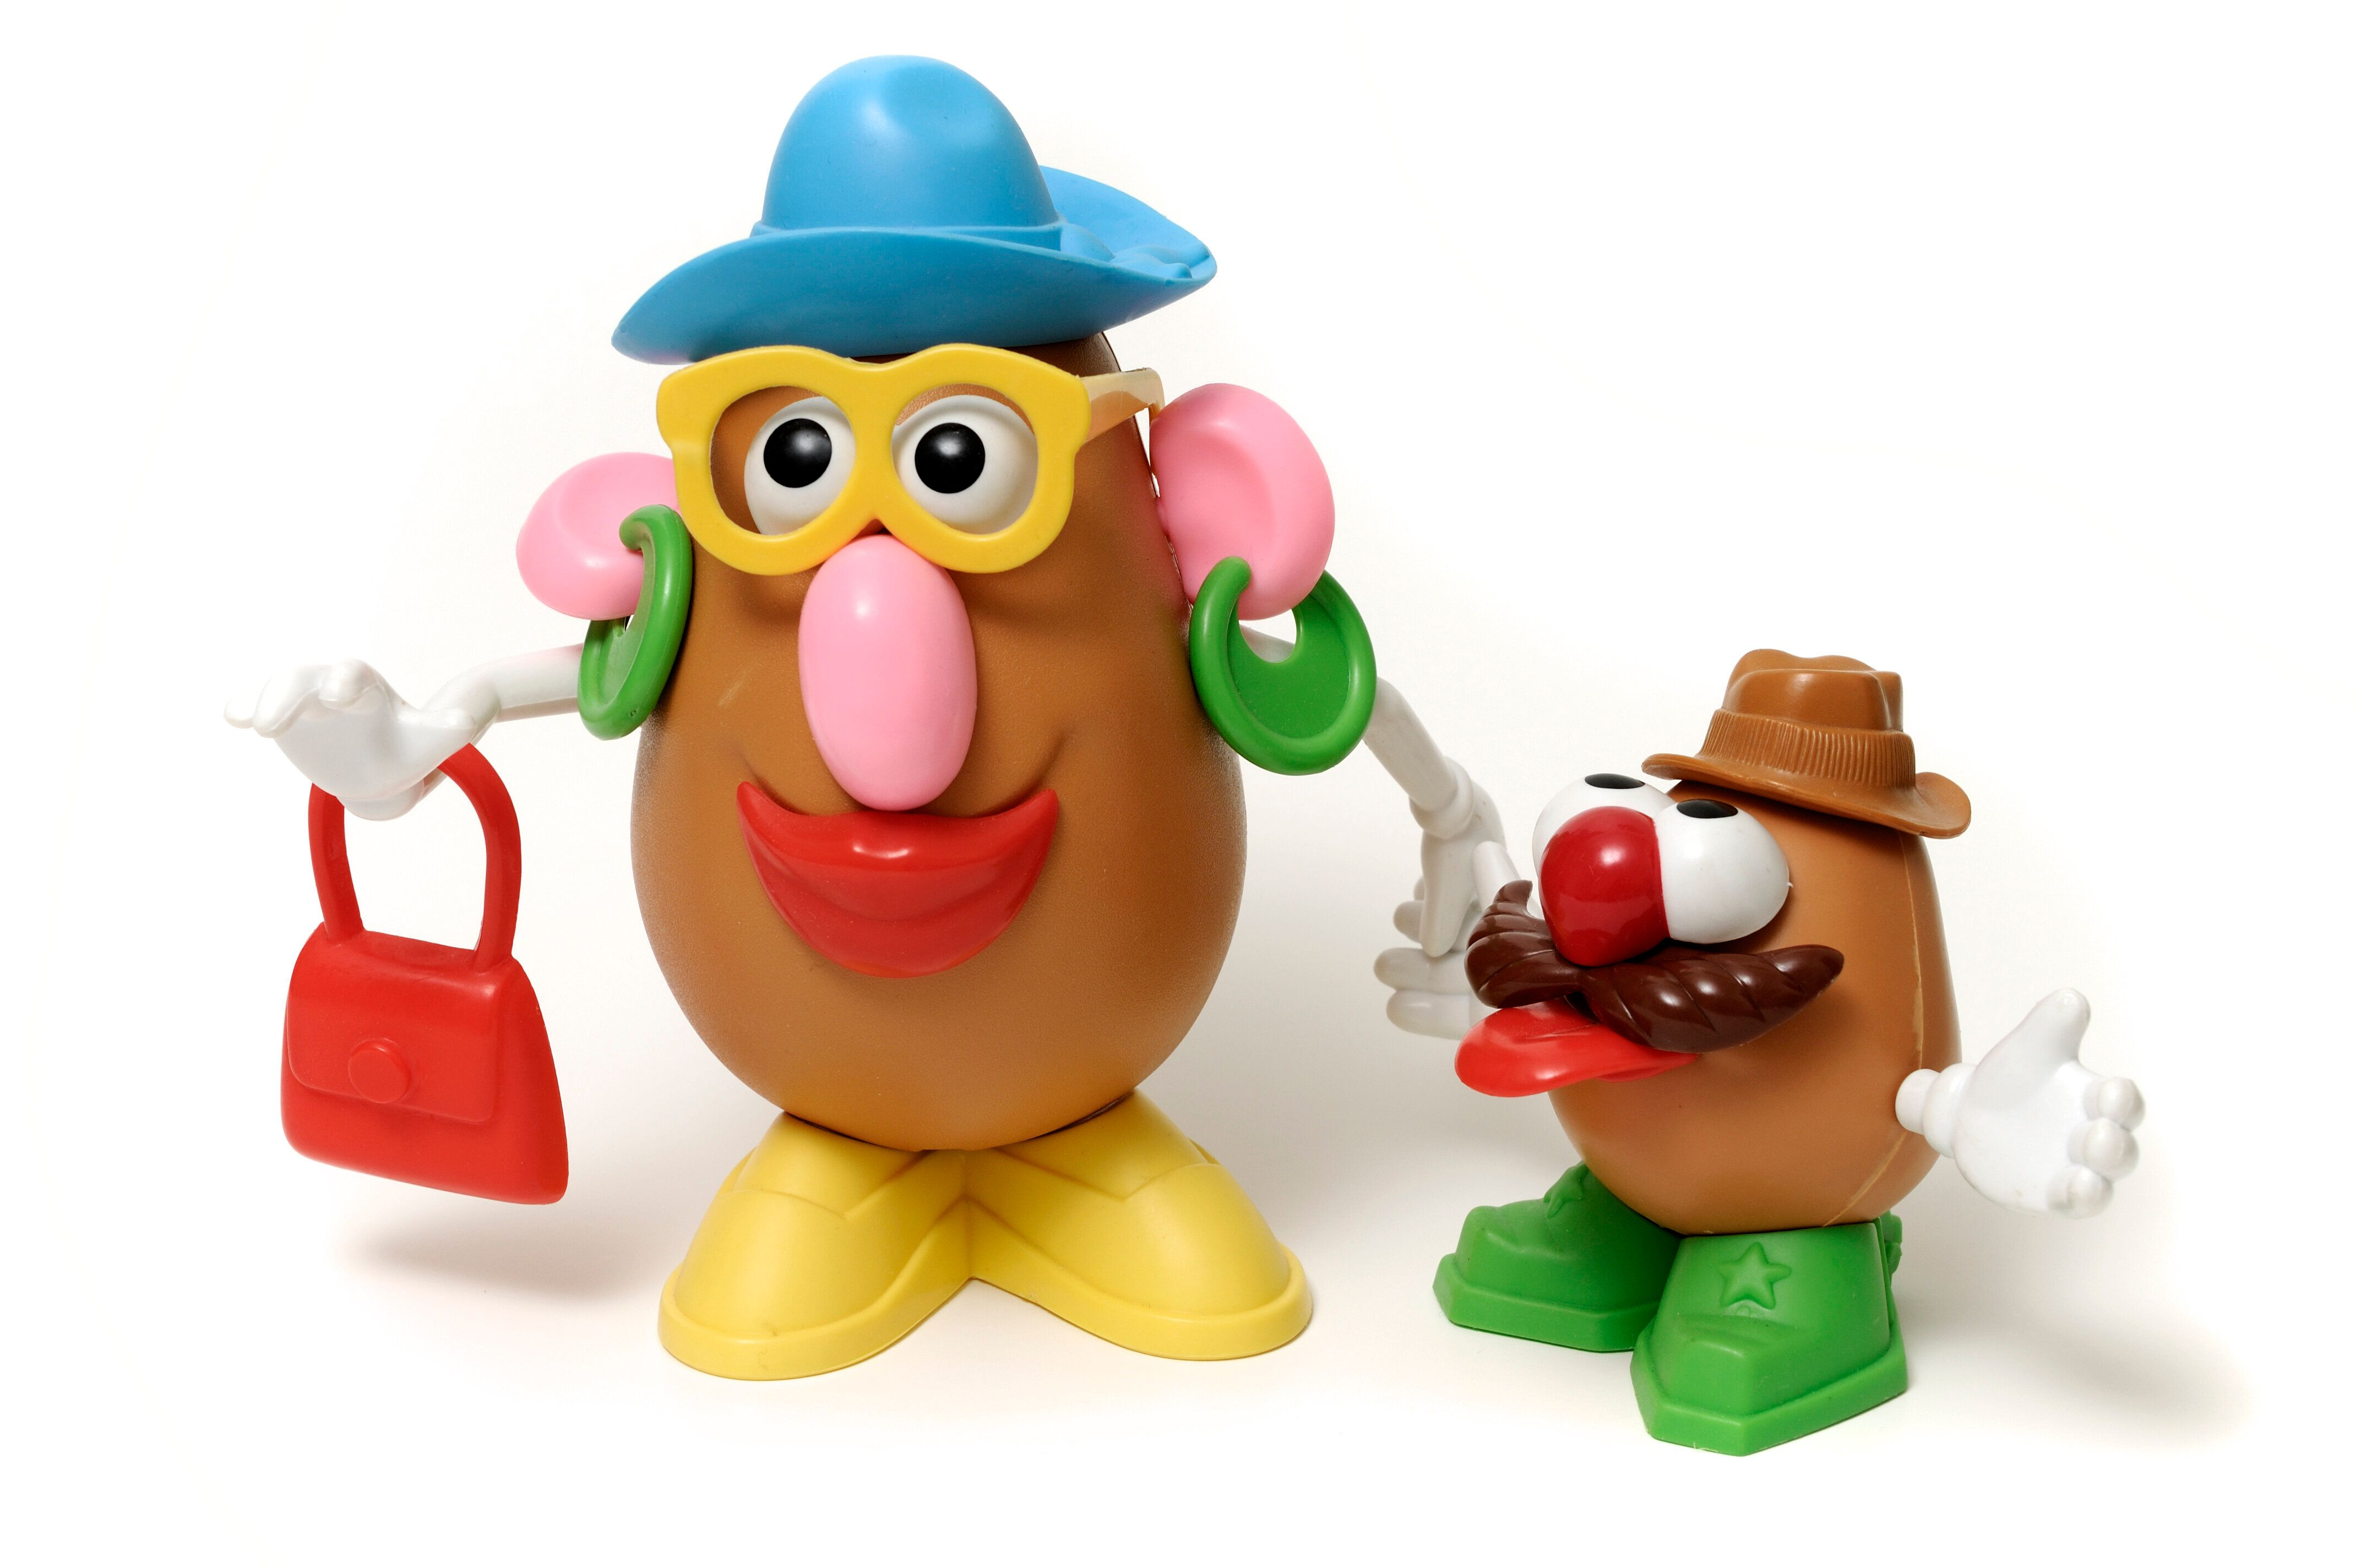 Biden is not trying to get rid of Mr. Potato Head.